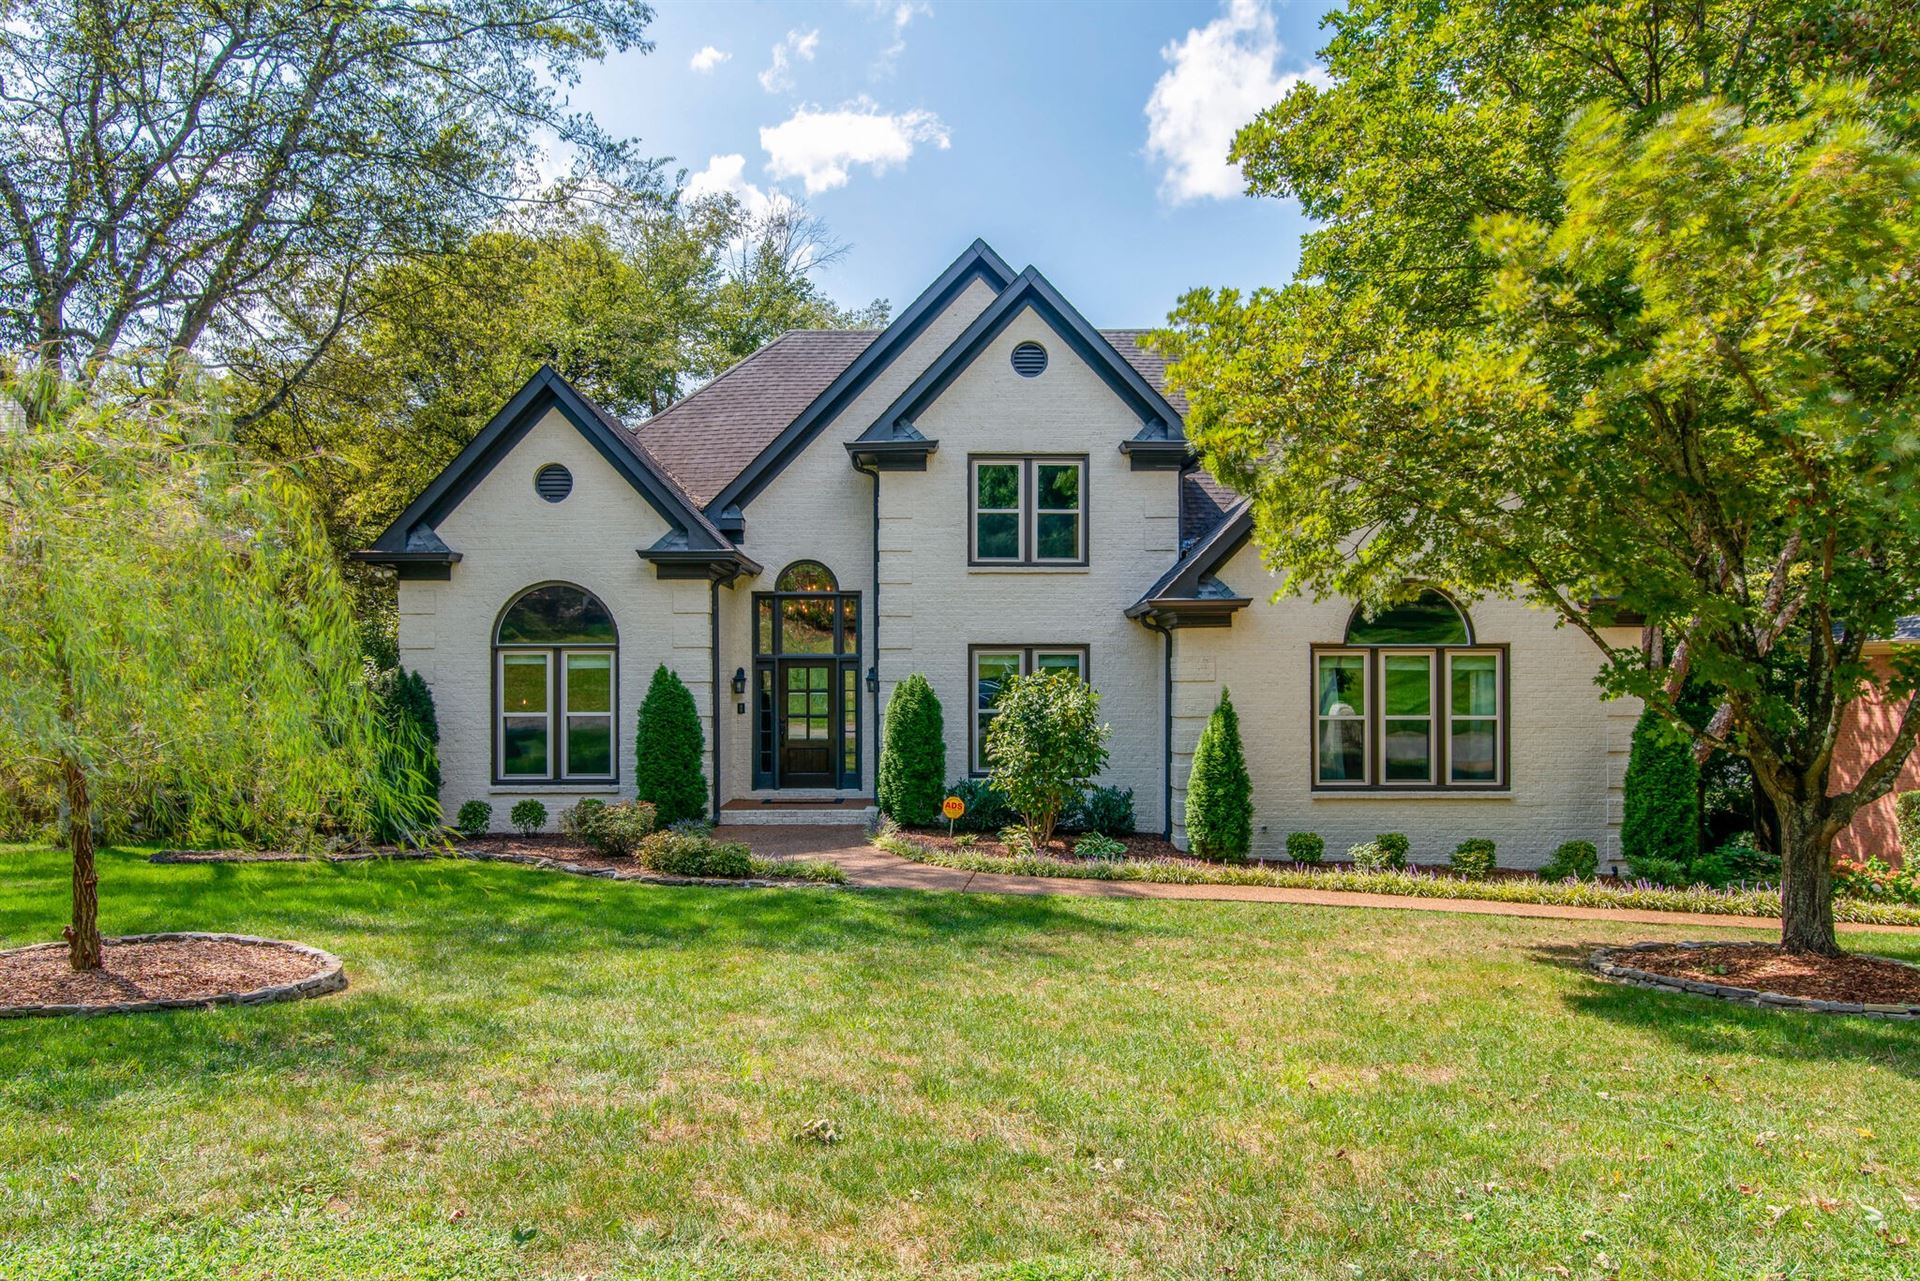 Photo of 9443 Highwood Hill Rd, Brentwood, TN 37027 (MLS # 2291178)